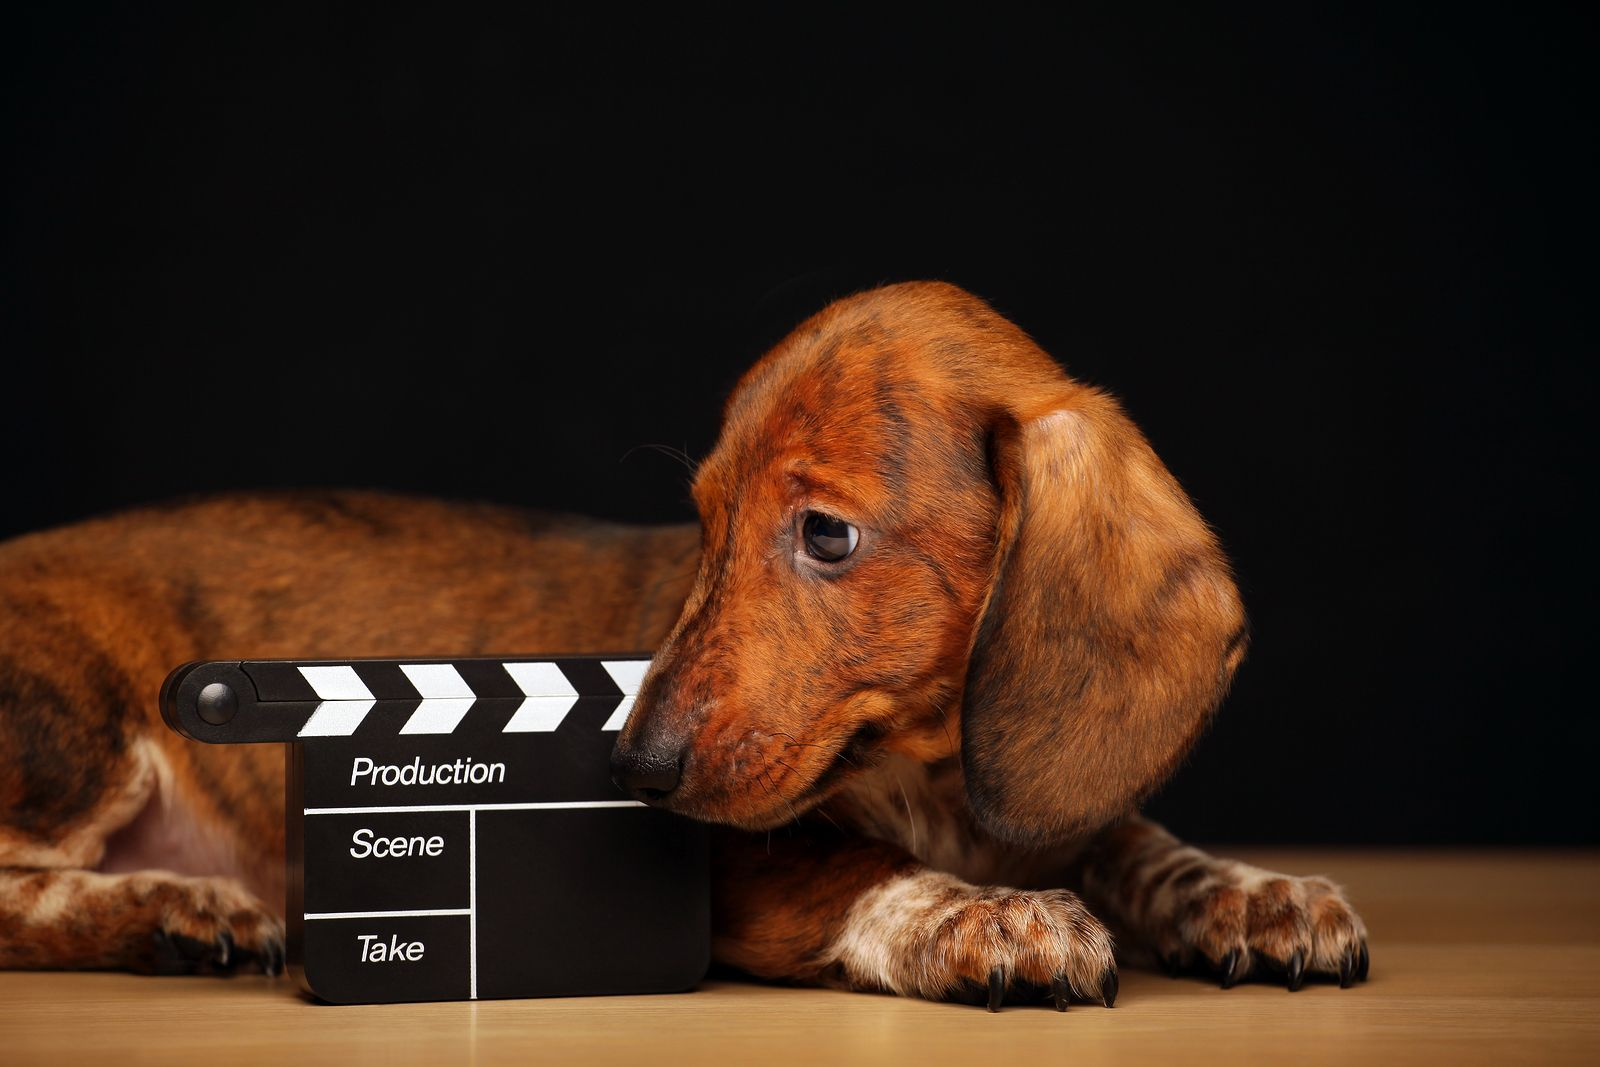 dog laying next to a movie scene cutter